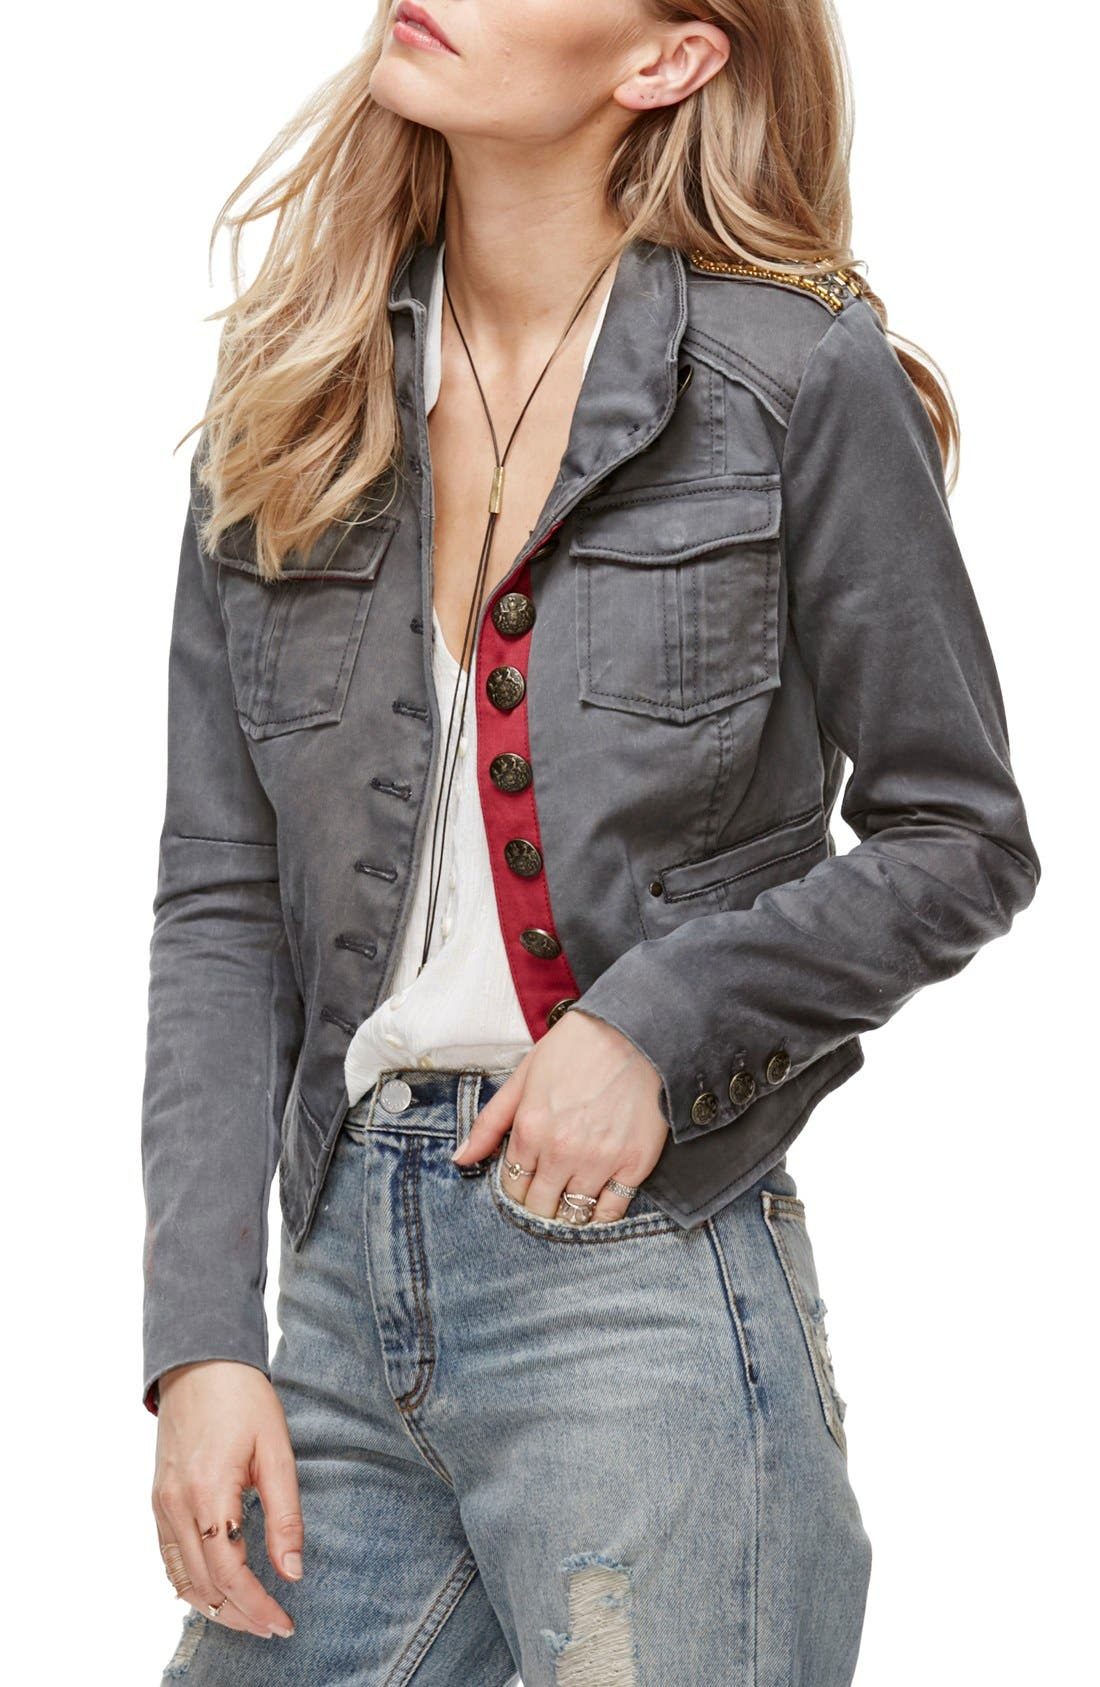 Alternate Image 1 Selected - Free People Shrunken Officer Jacket